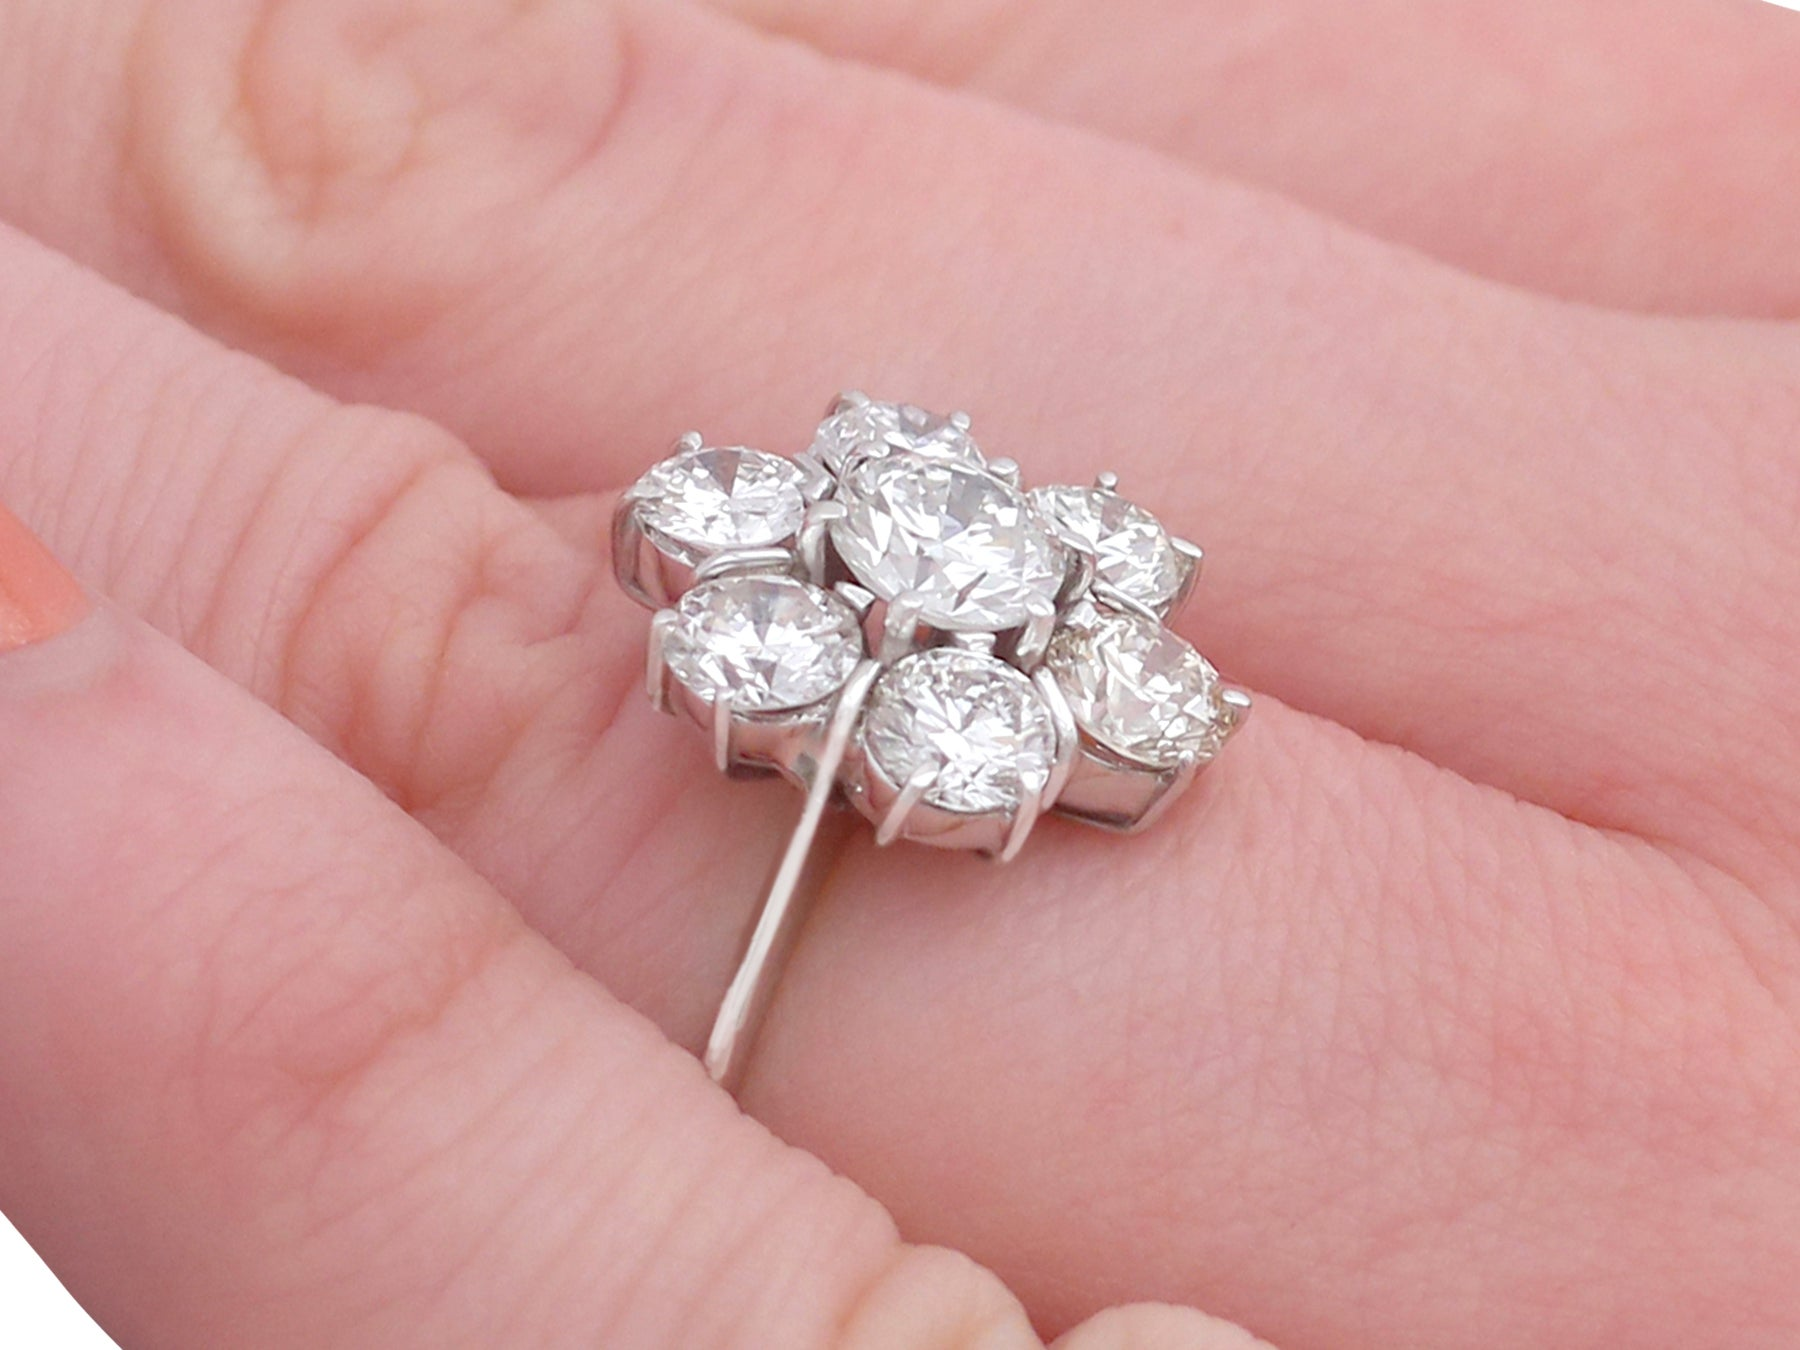 1950s 2.68 Ct Diamond White Gold Cluster Ring For Sale at 1stdibs